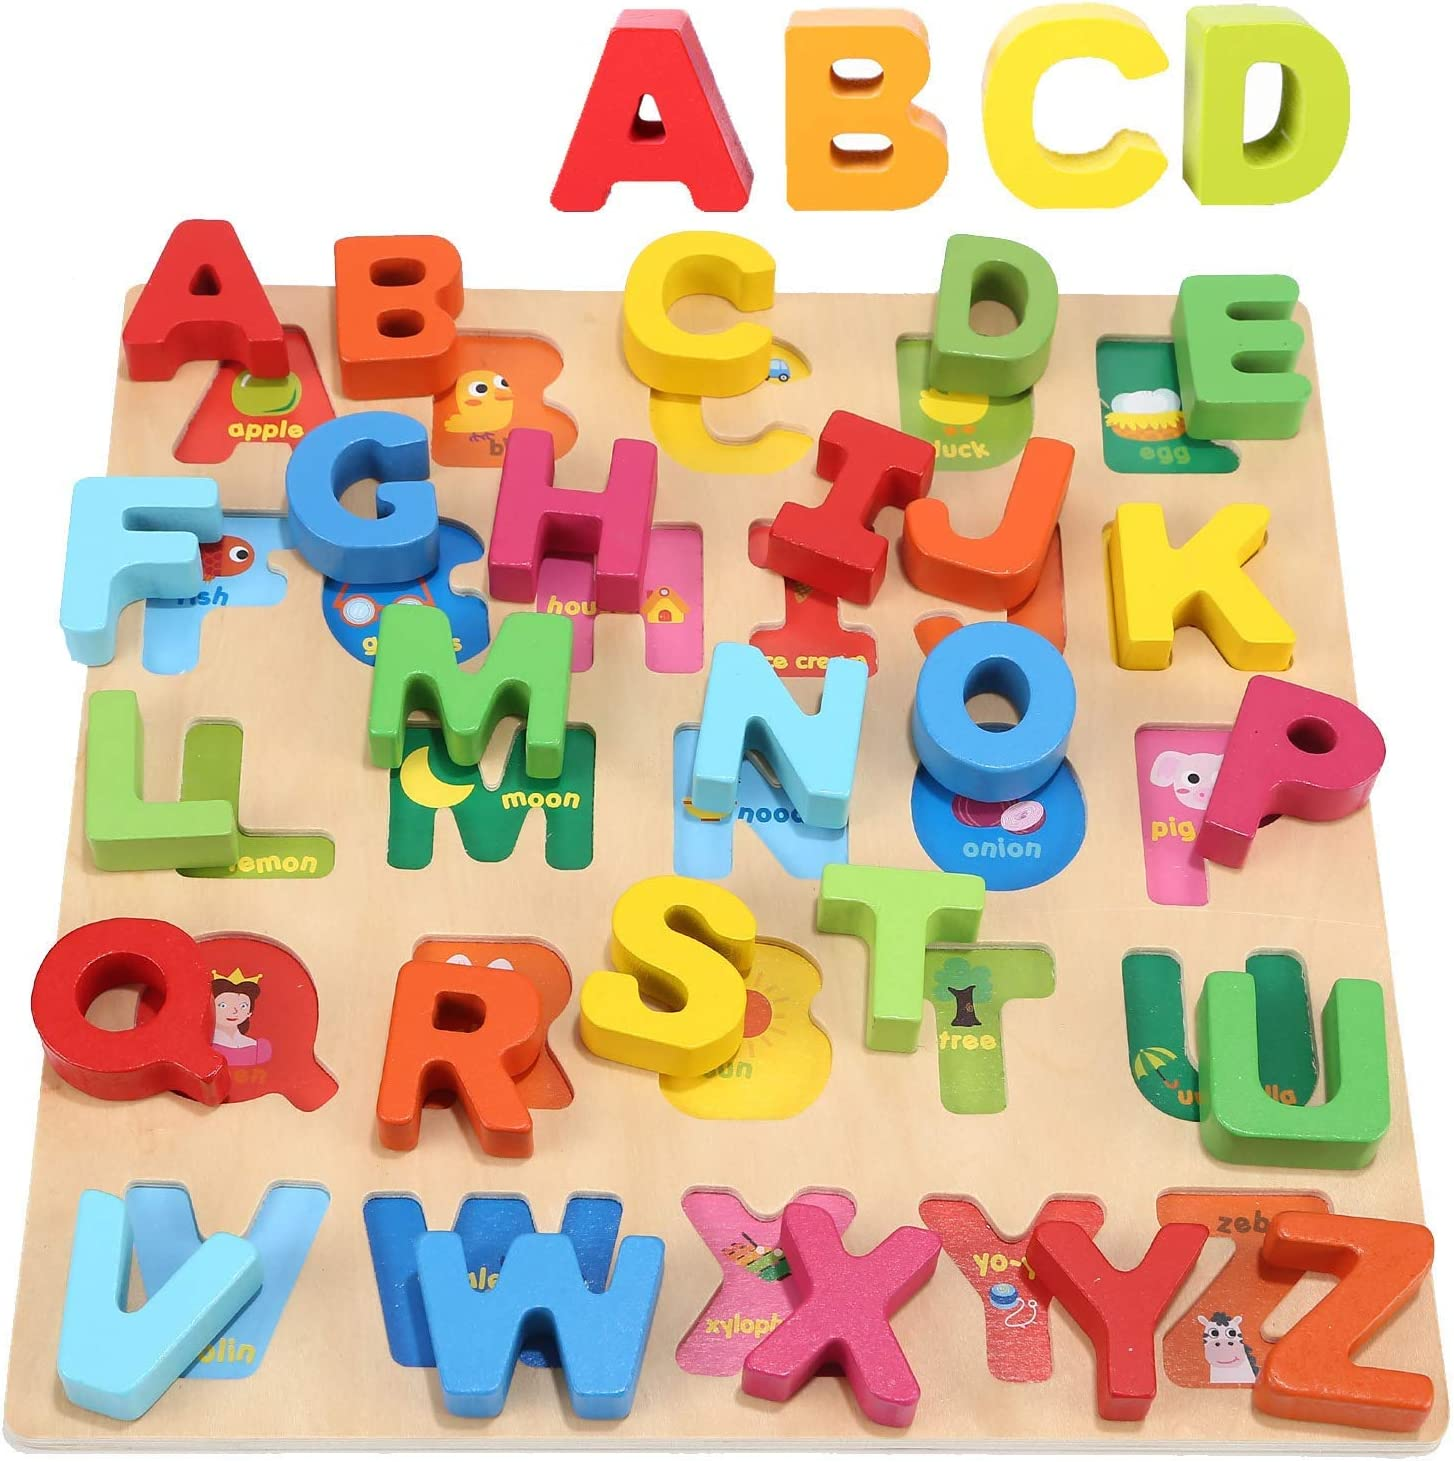 Spelling Kunmark Wooden Alphabet Puzzle ABC Jigsaws Chunky Letters Early Learning Toys for Kindergarten and Toddlers-est Educational Toy Preschool Learning Uppercase Letter Counting